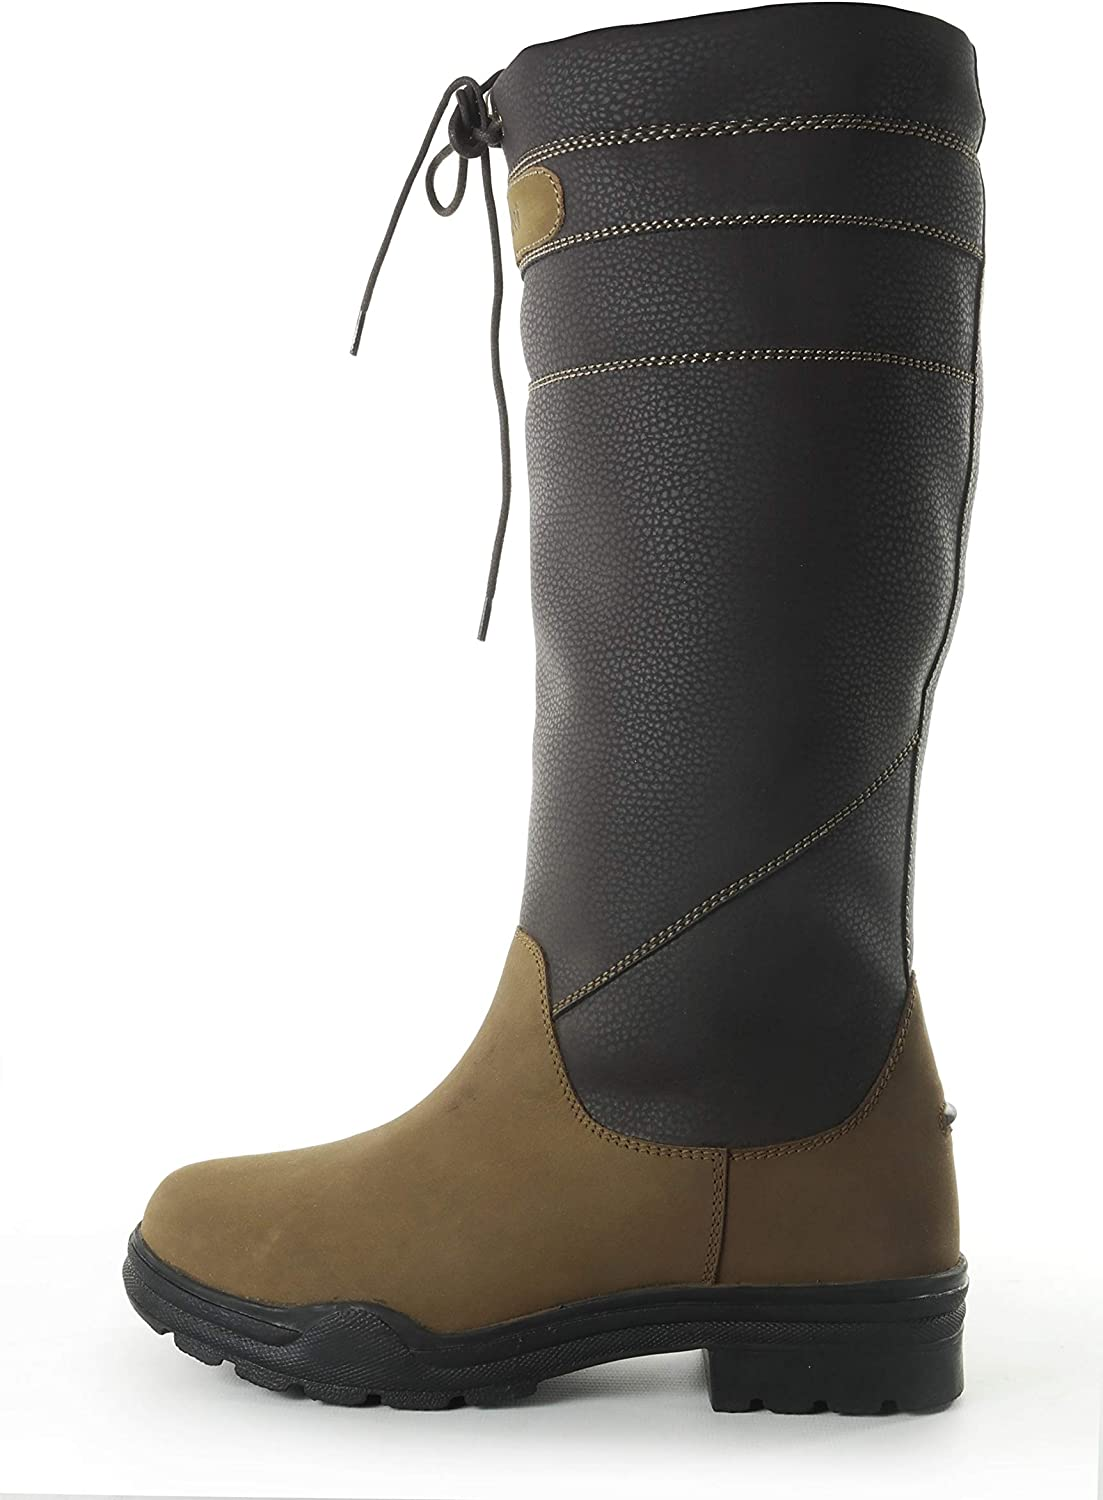 Brogini Unisex Adults Derbyshire Leather Extra Wide Country Boots